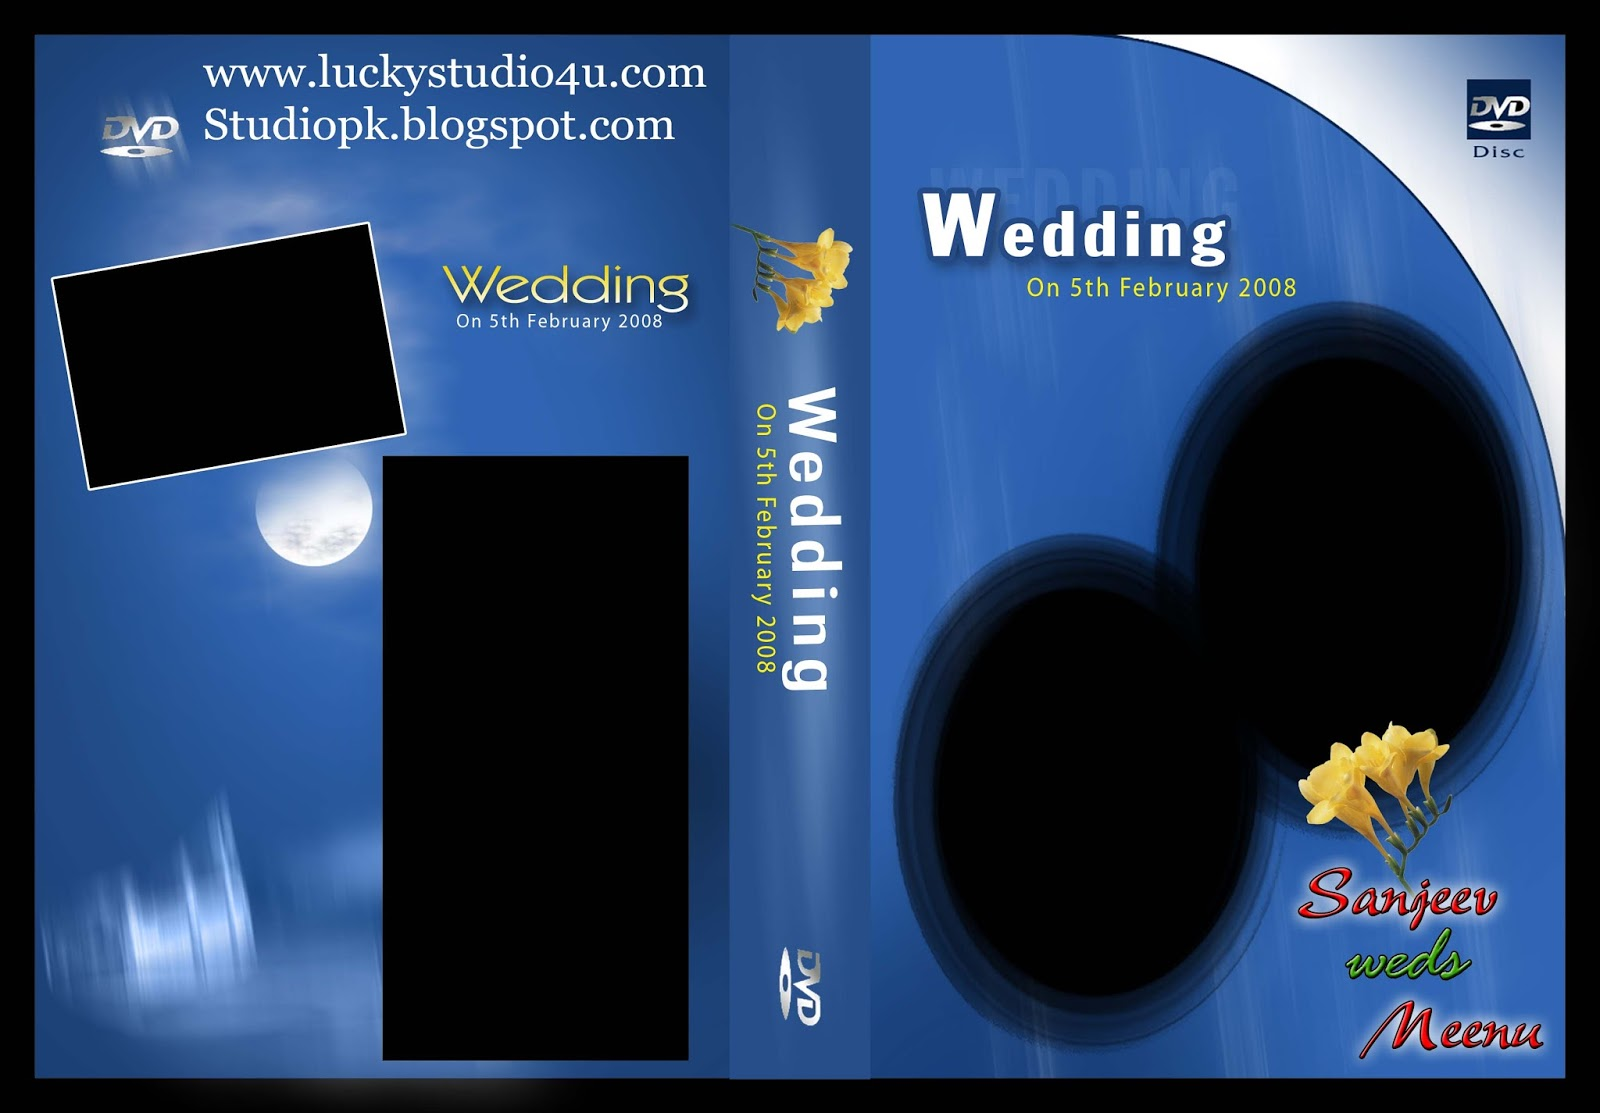 Wedding DVD Cover Psd Free Download - Psdfile4u